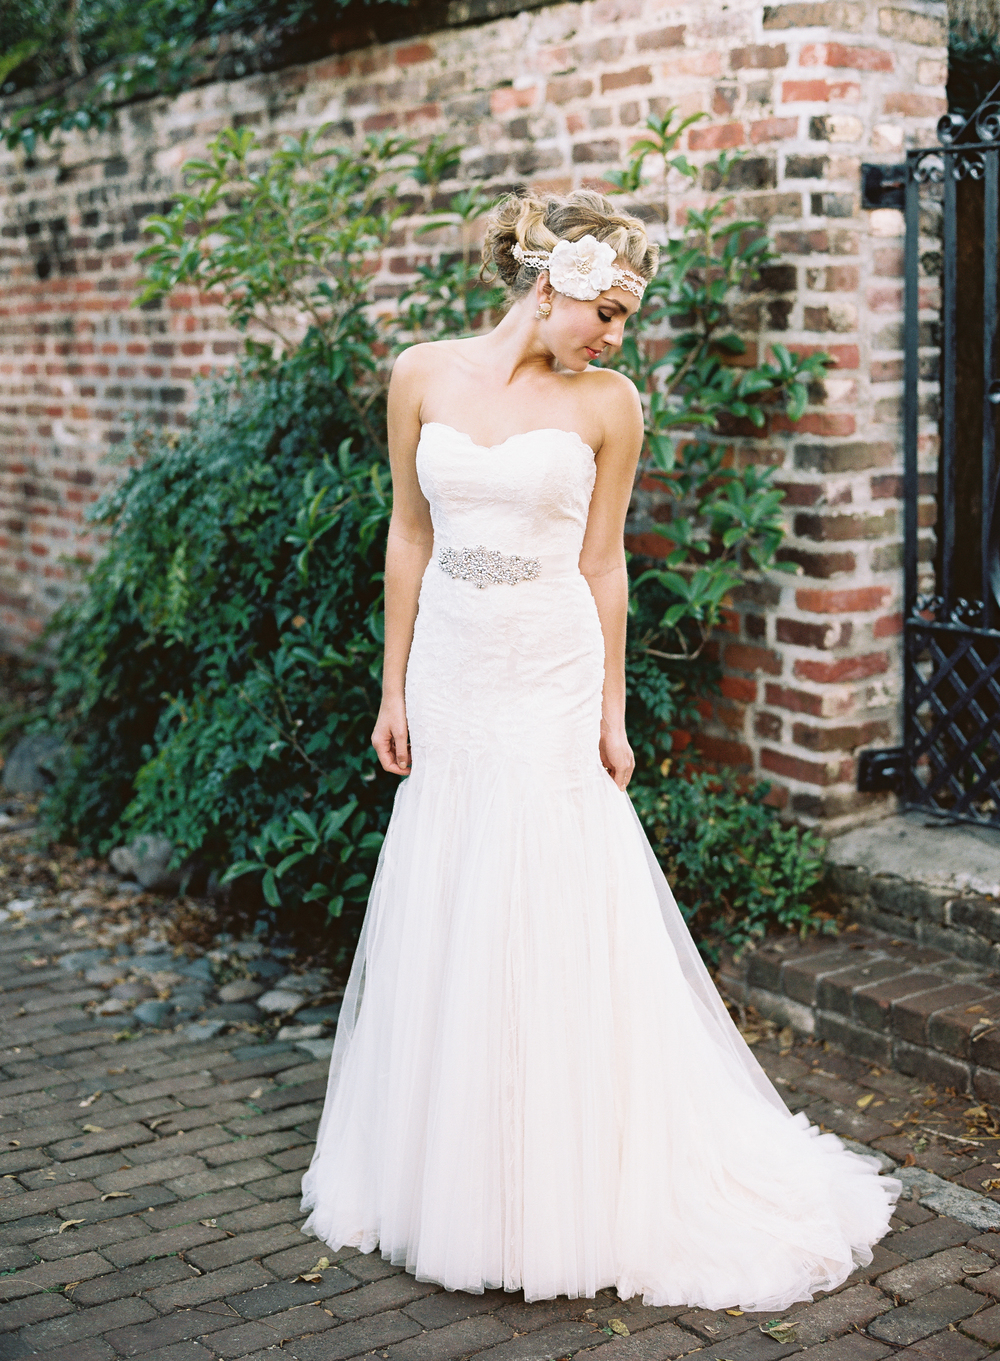 Gown-Boutique-virgil-bunao-1087.jpg